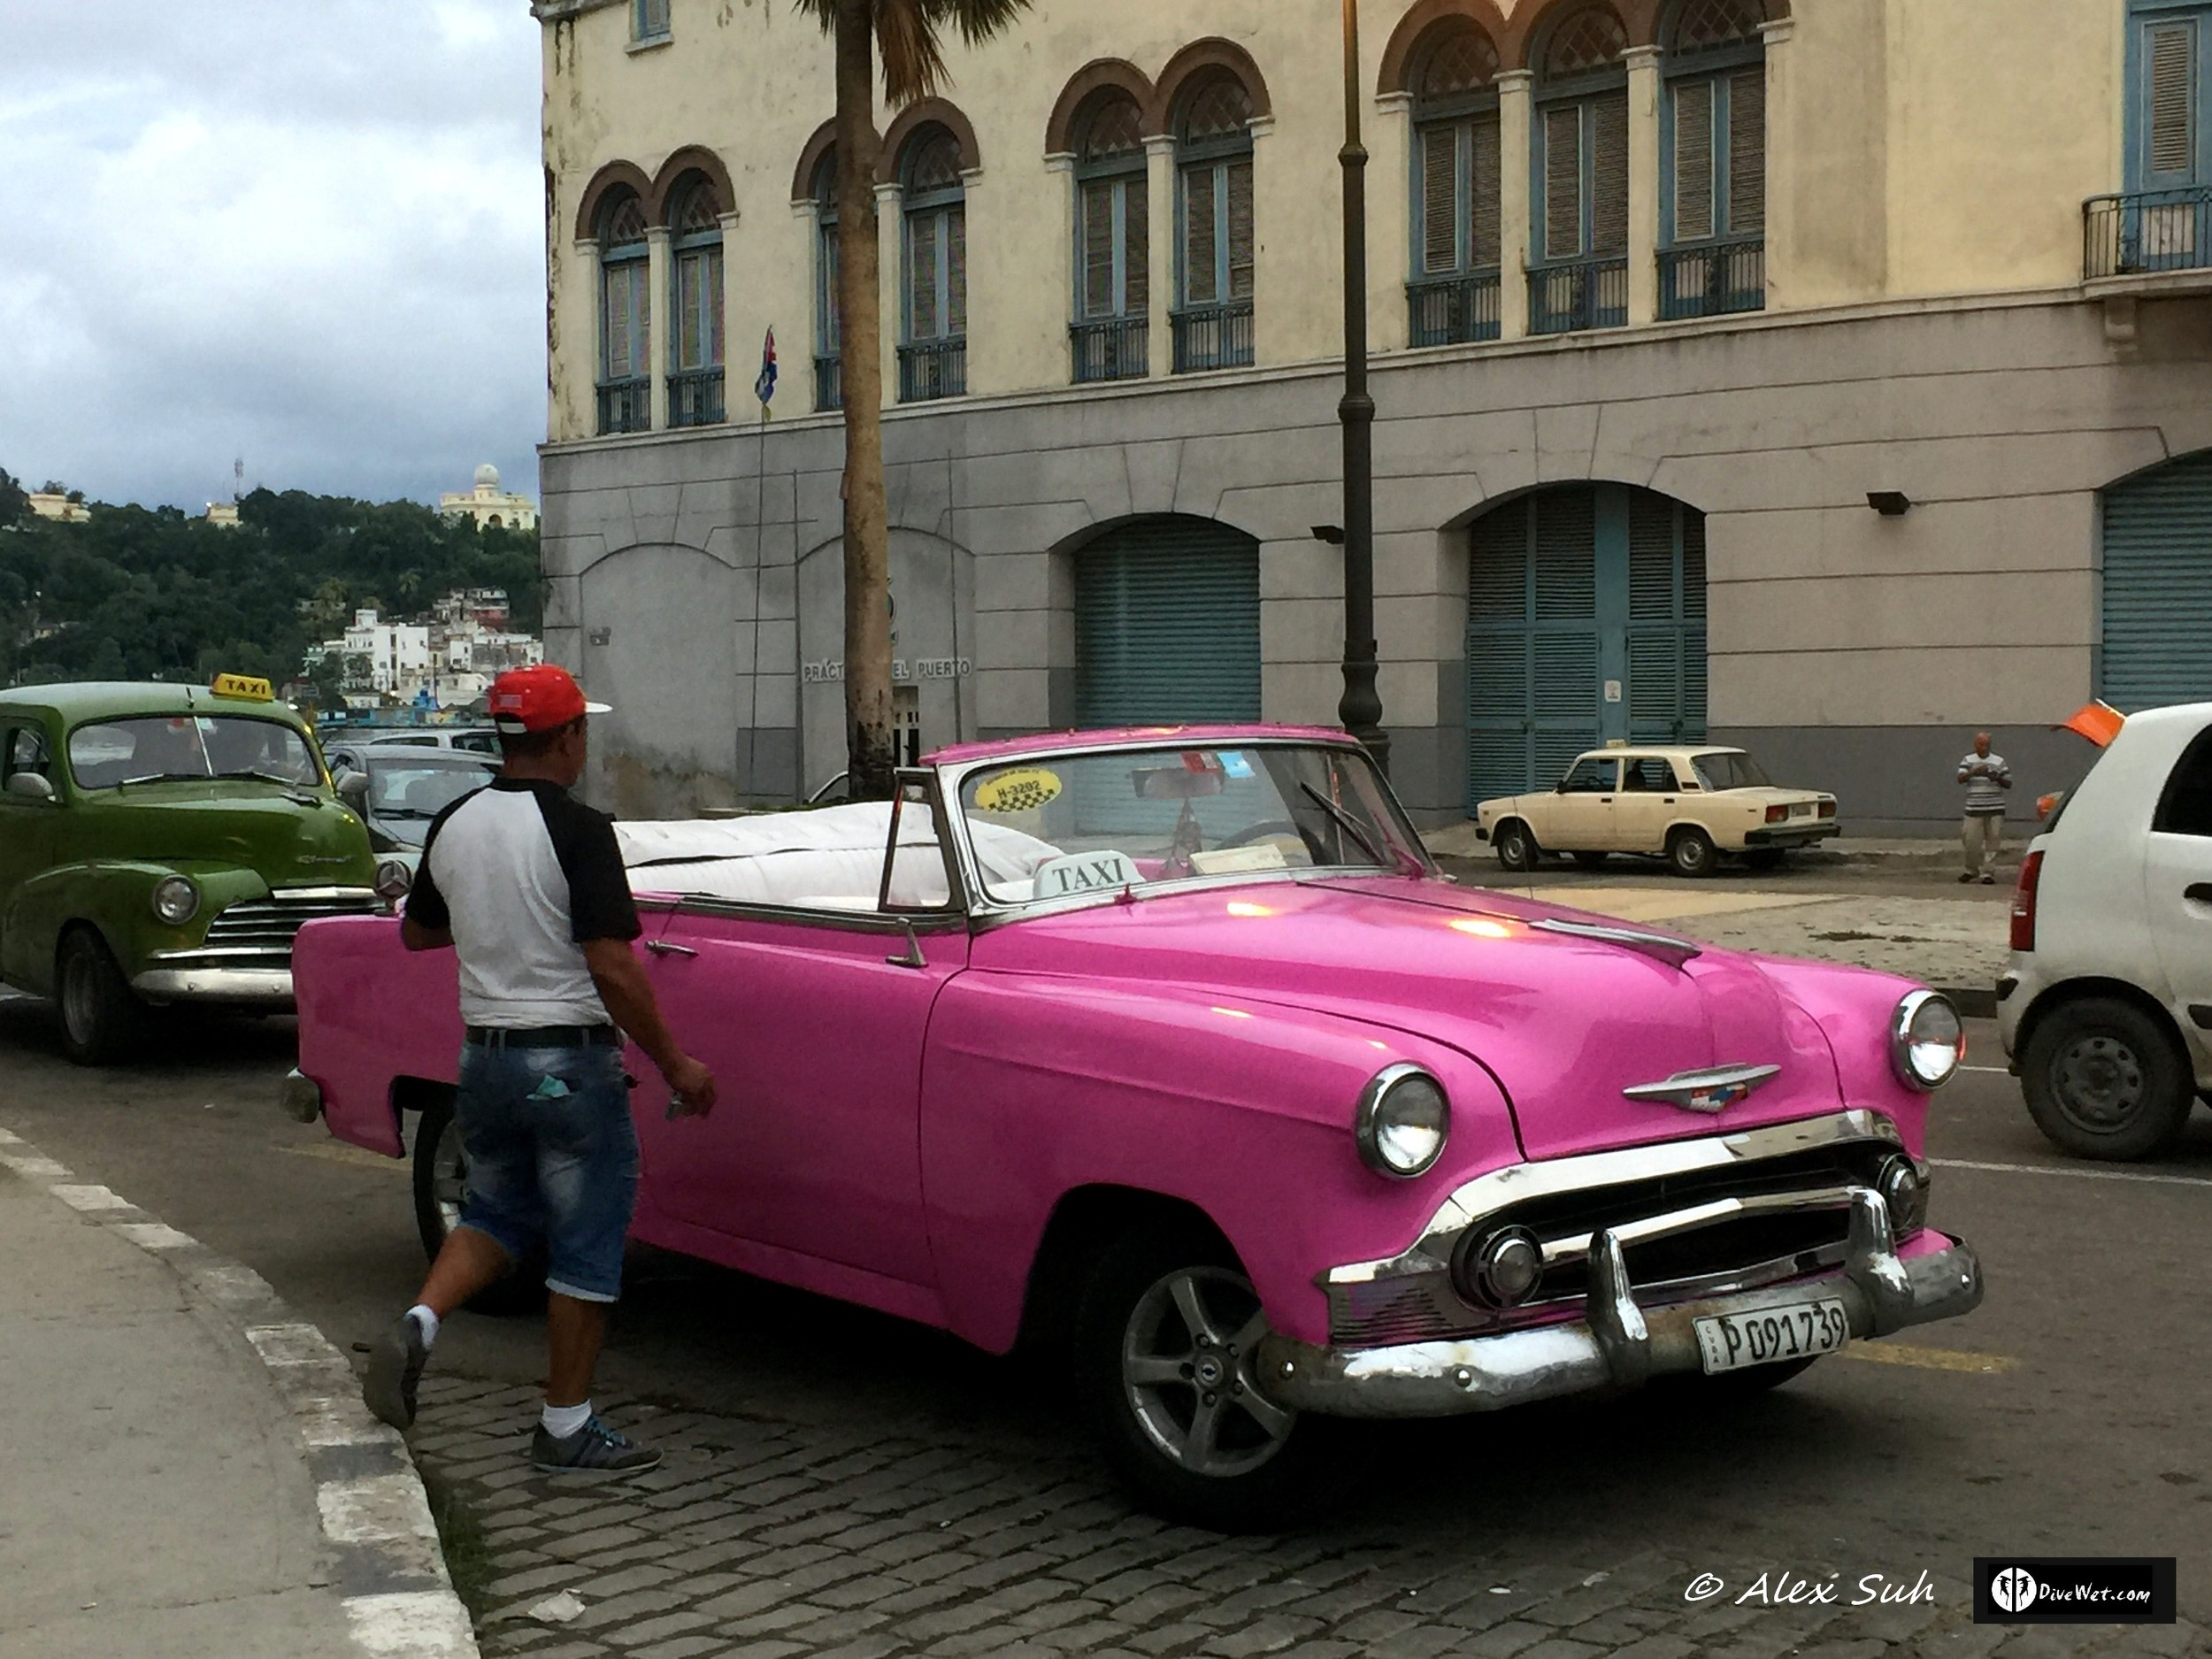 Cuba is famous for their old cars. Chevy in this case.